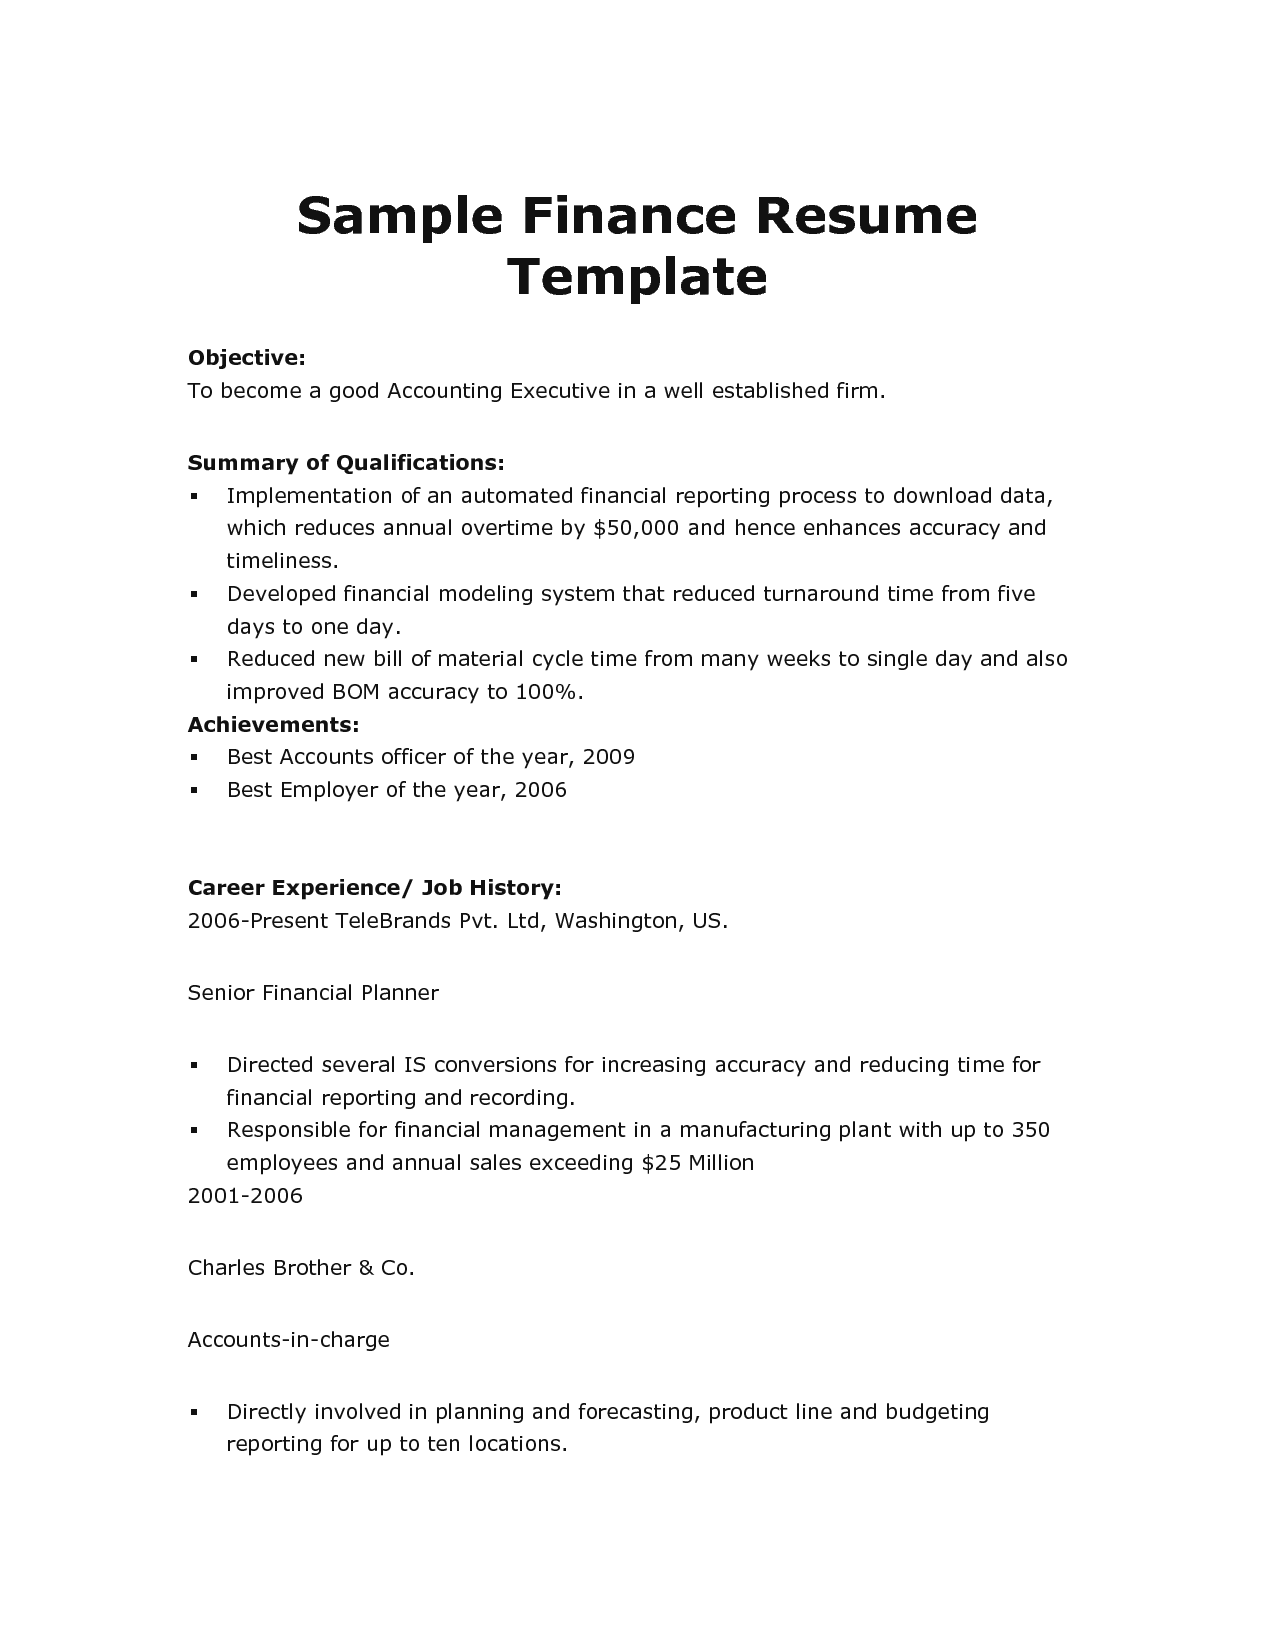 Professional Resume Sample Word Format Download High Quality Professional Resume Template Samples